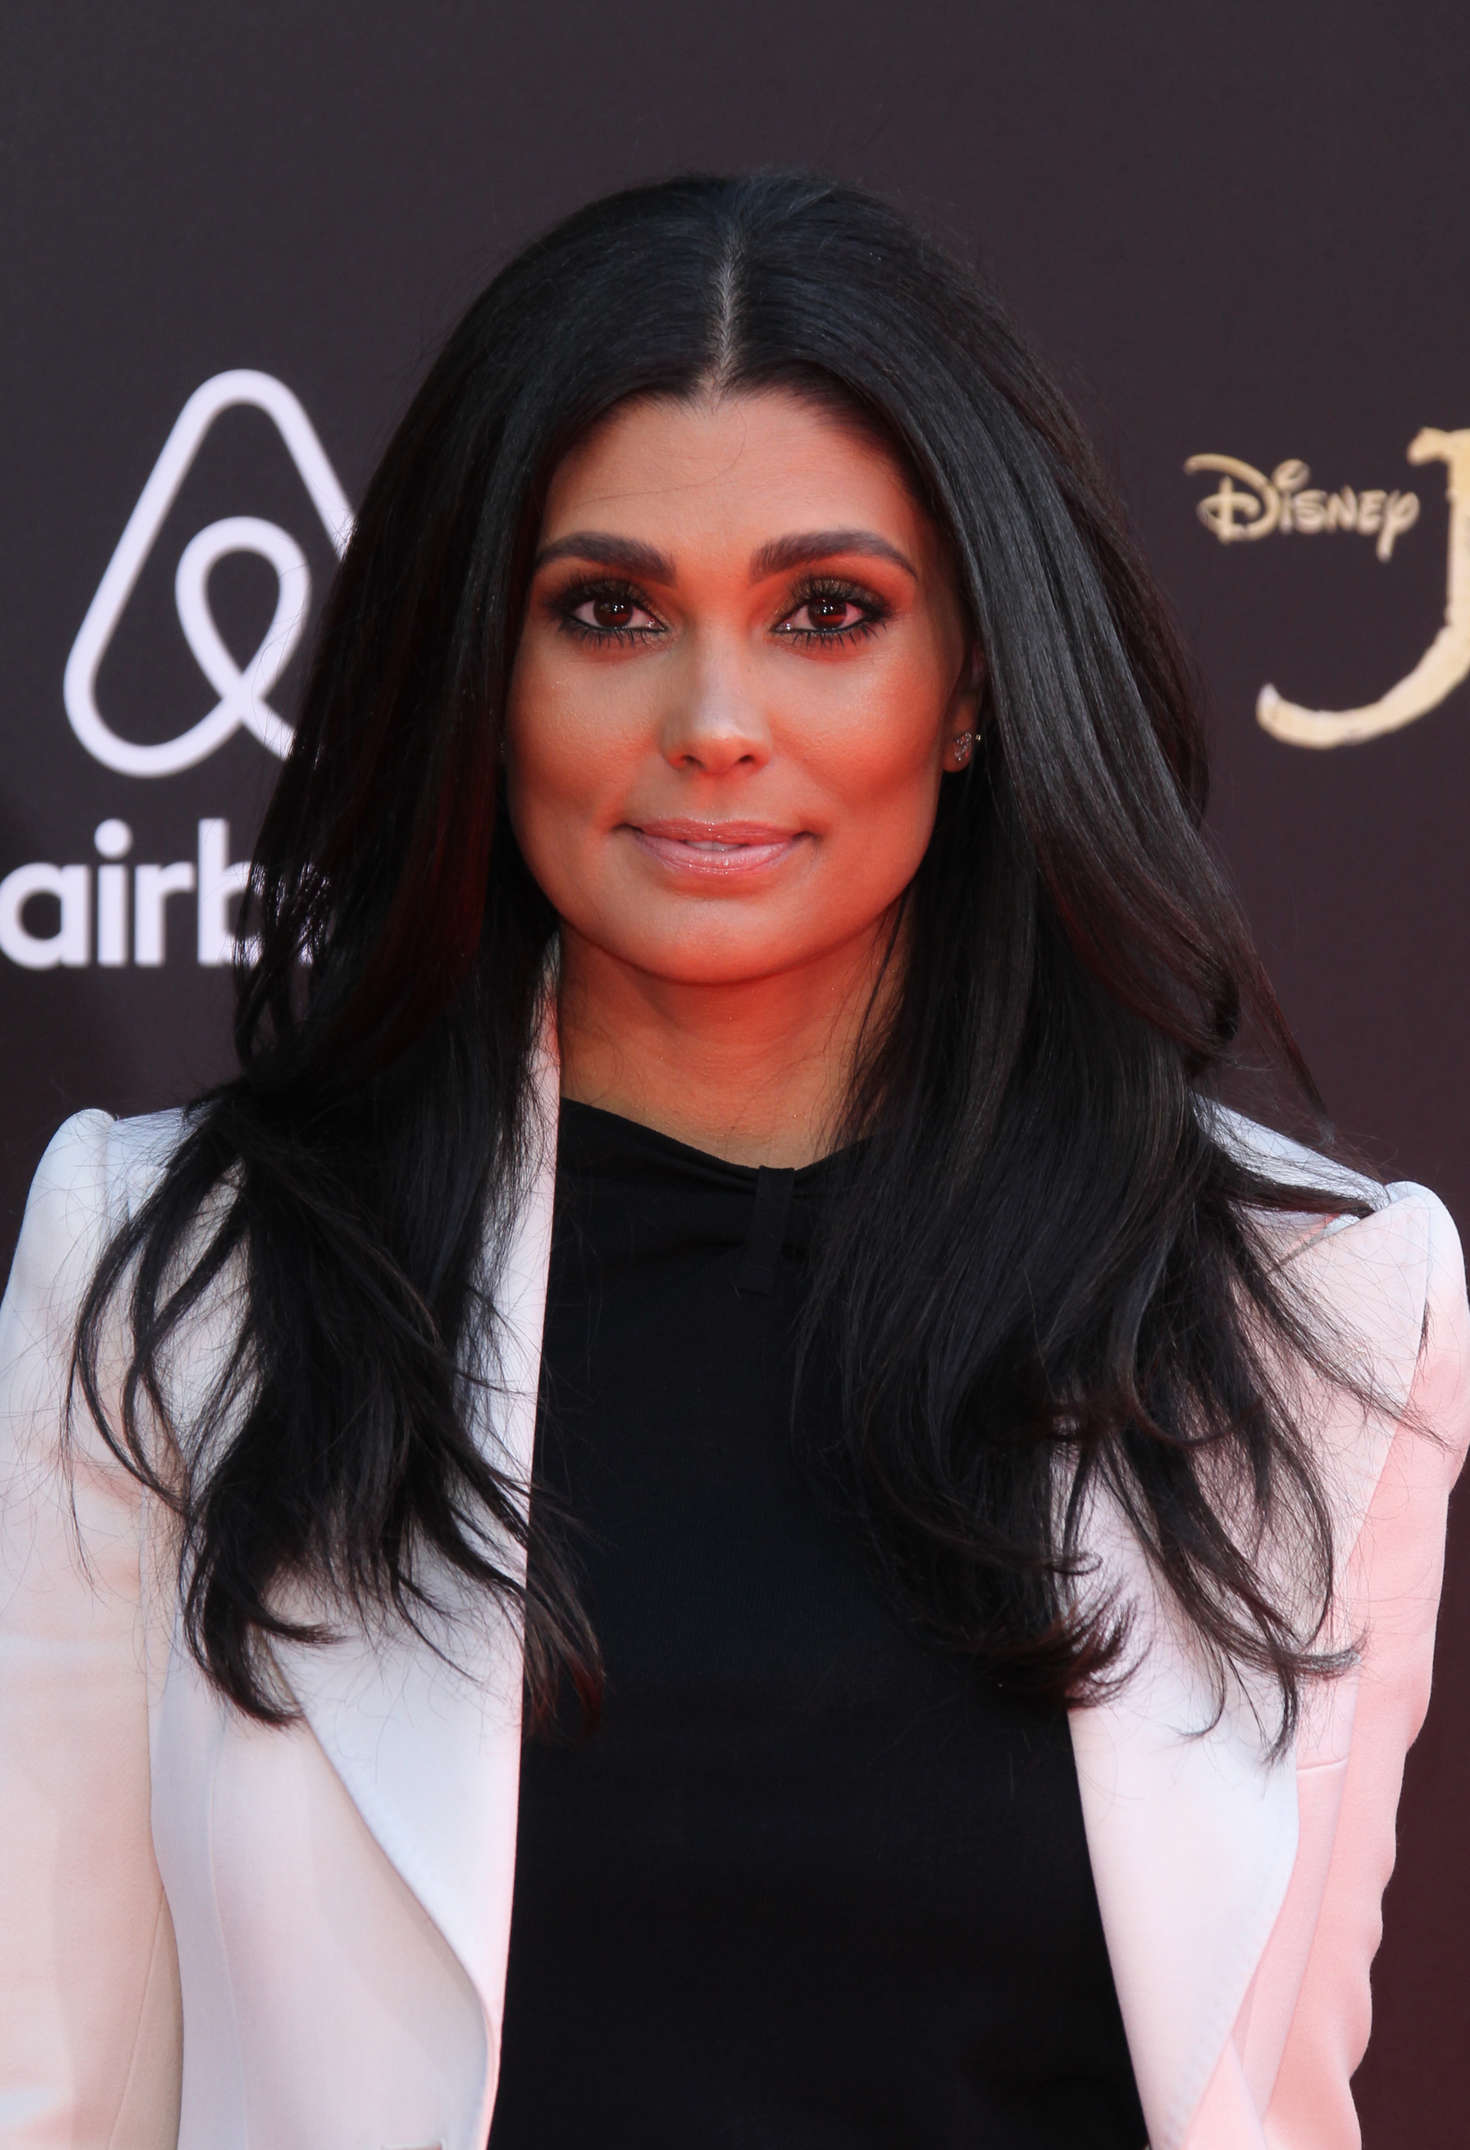 Rachel Roy The Jungle Book Premiere in Hollywood